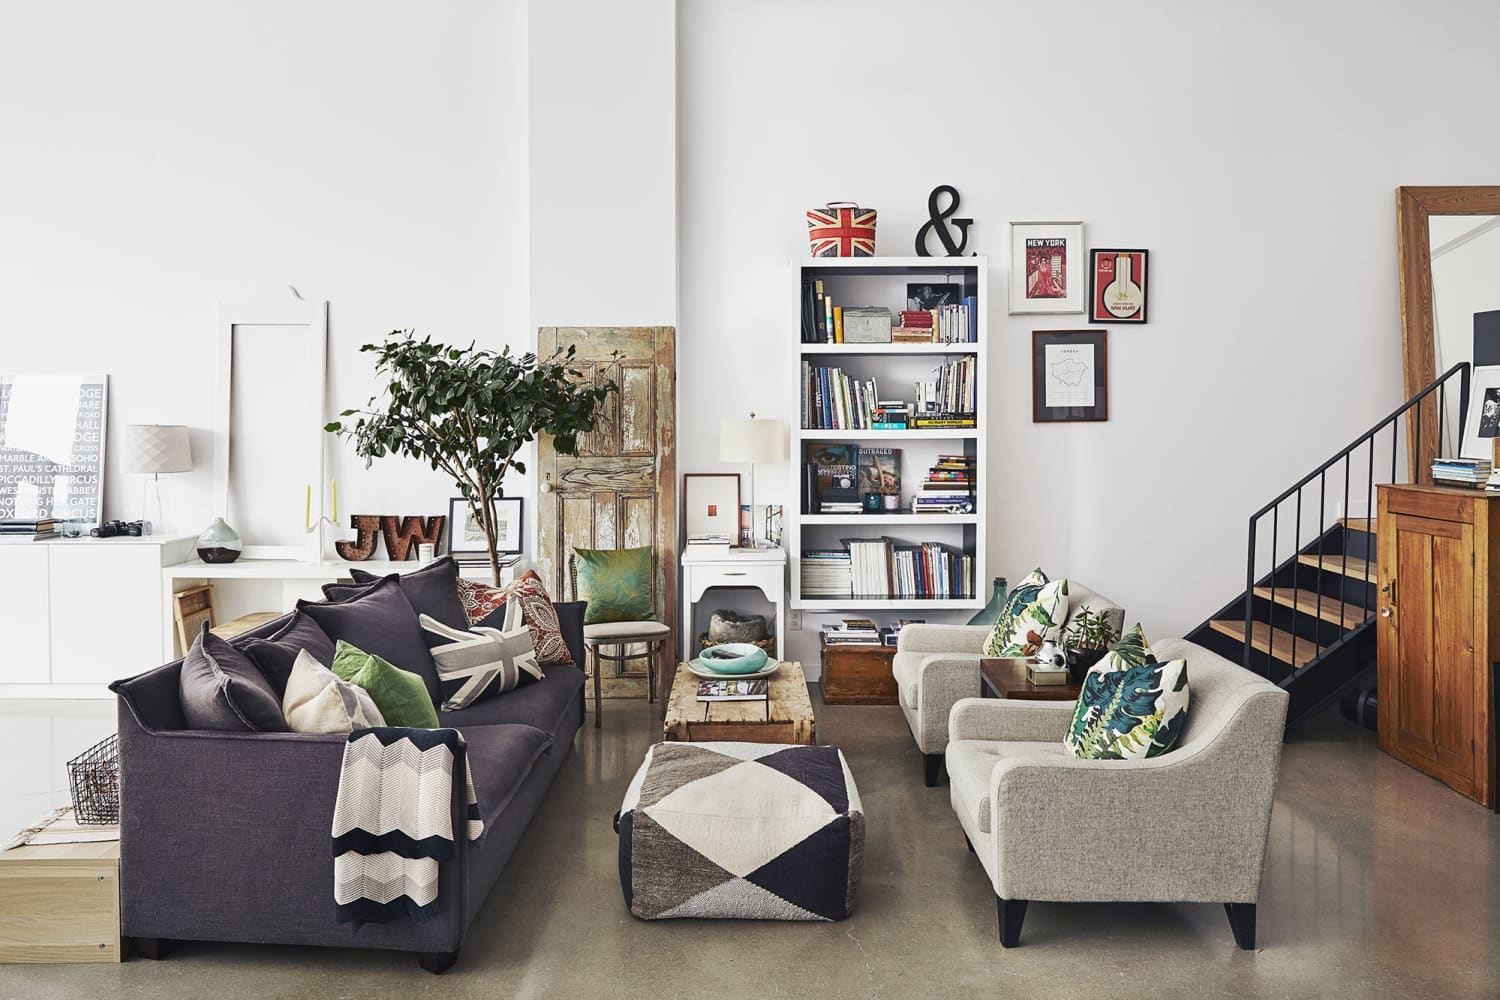 5 Things You Shouldn't Buy If You're Trying to Declutter